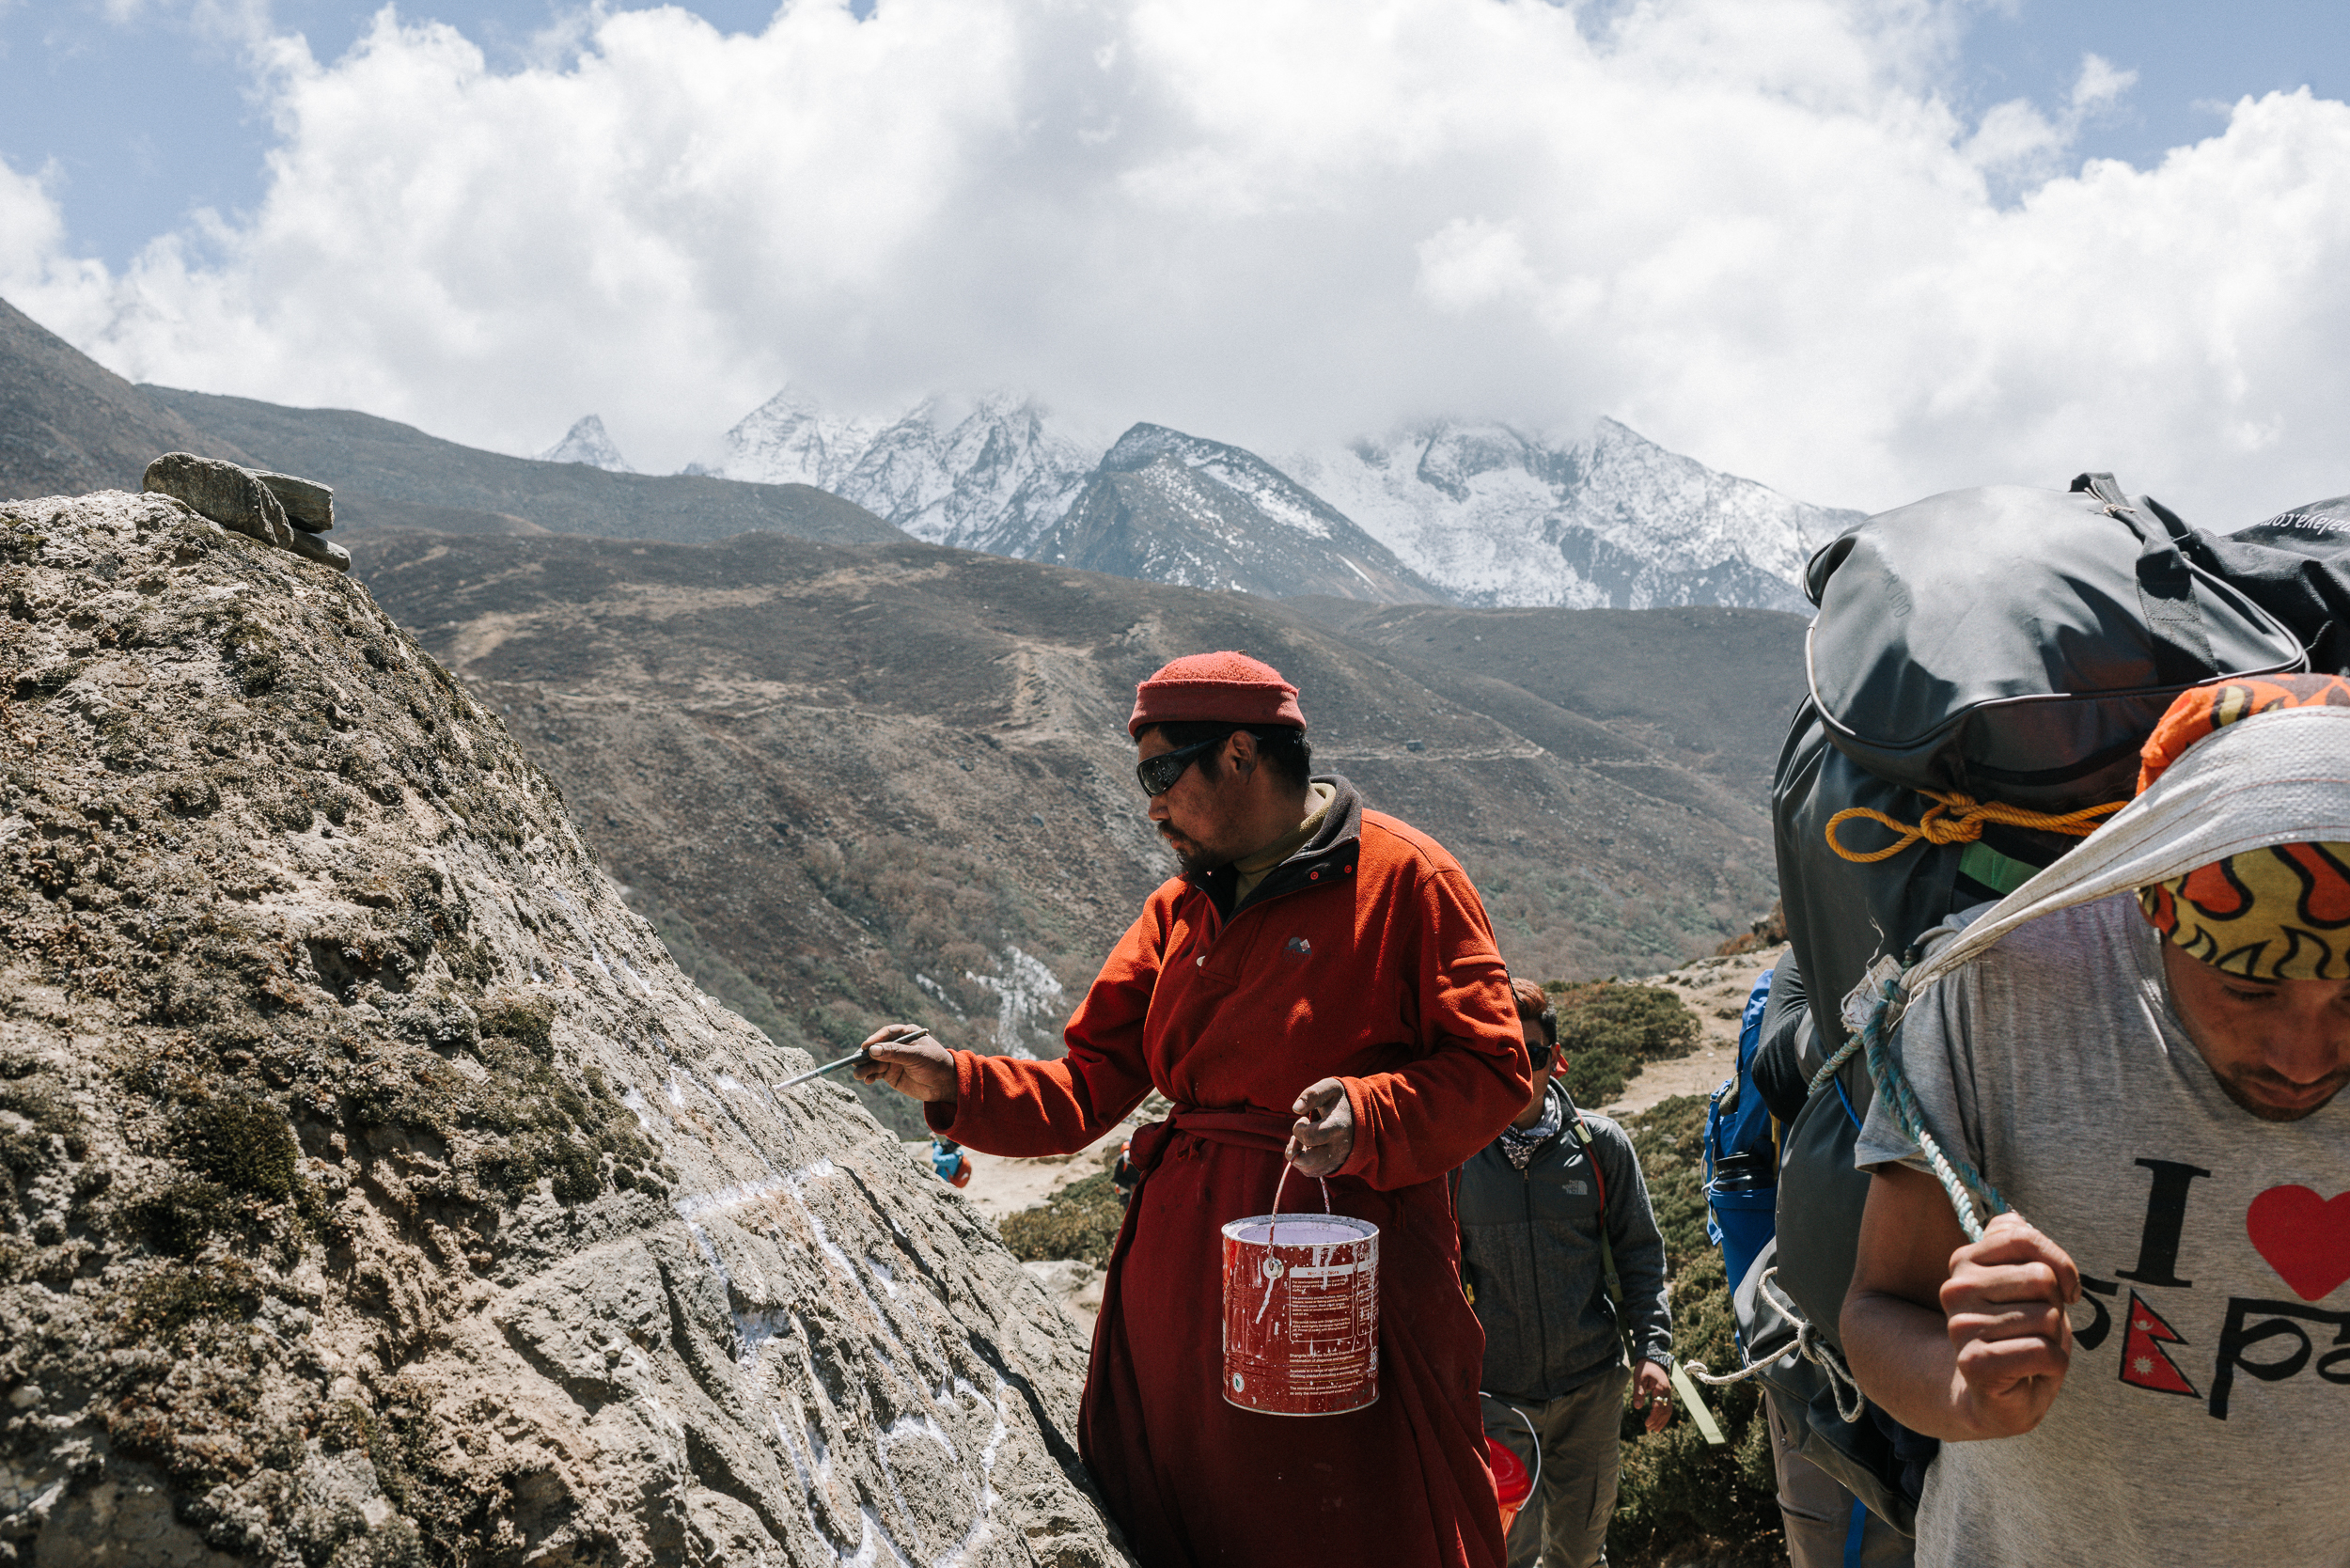 Nepal_EverestBaseCamp_2019_TaraShupe_Photography_DSC_3906.jpg